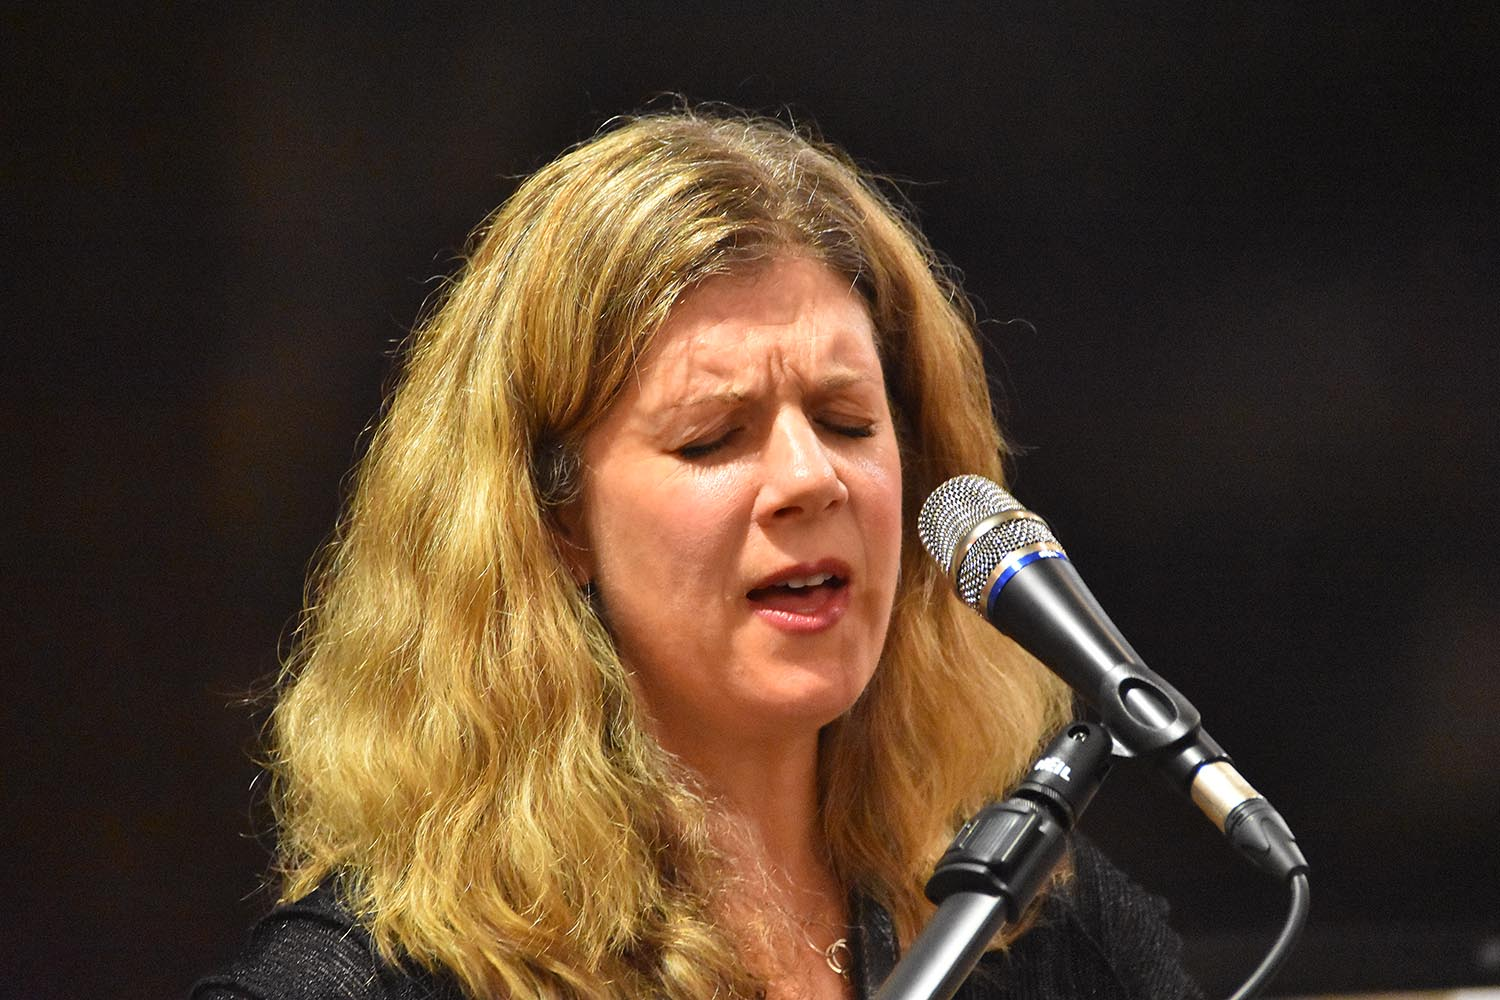 Singer-songwriter Dar Williams '89 performed, and read from her new book, at Wesleyan RJ Julia Bookstore on Oct. 10.